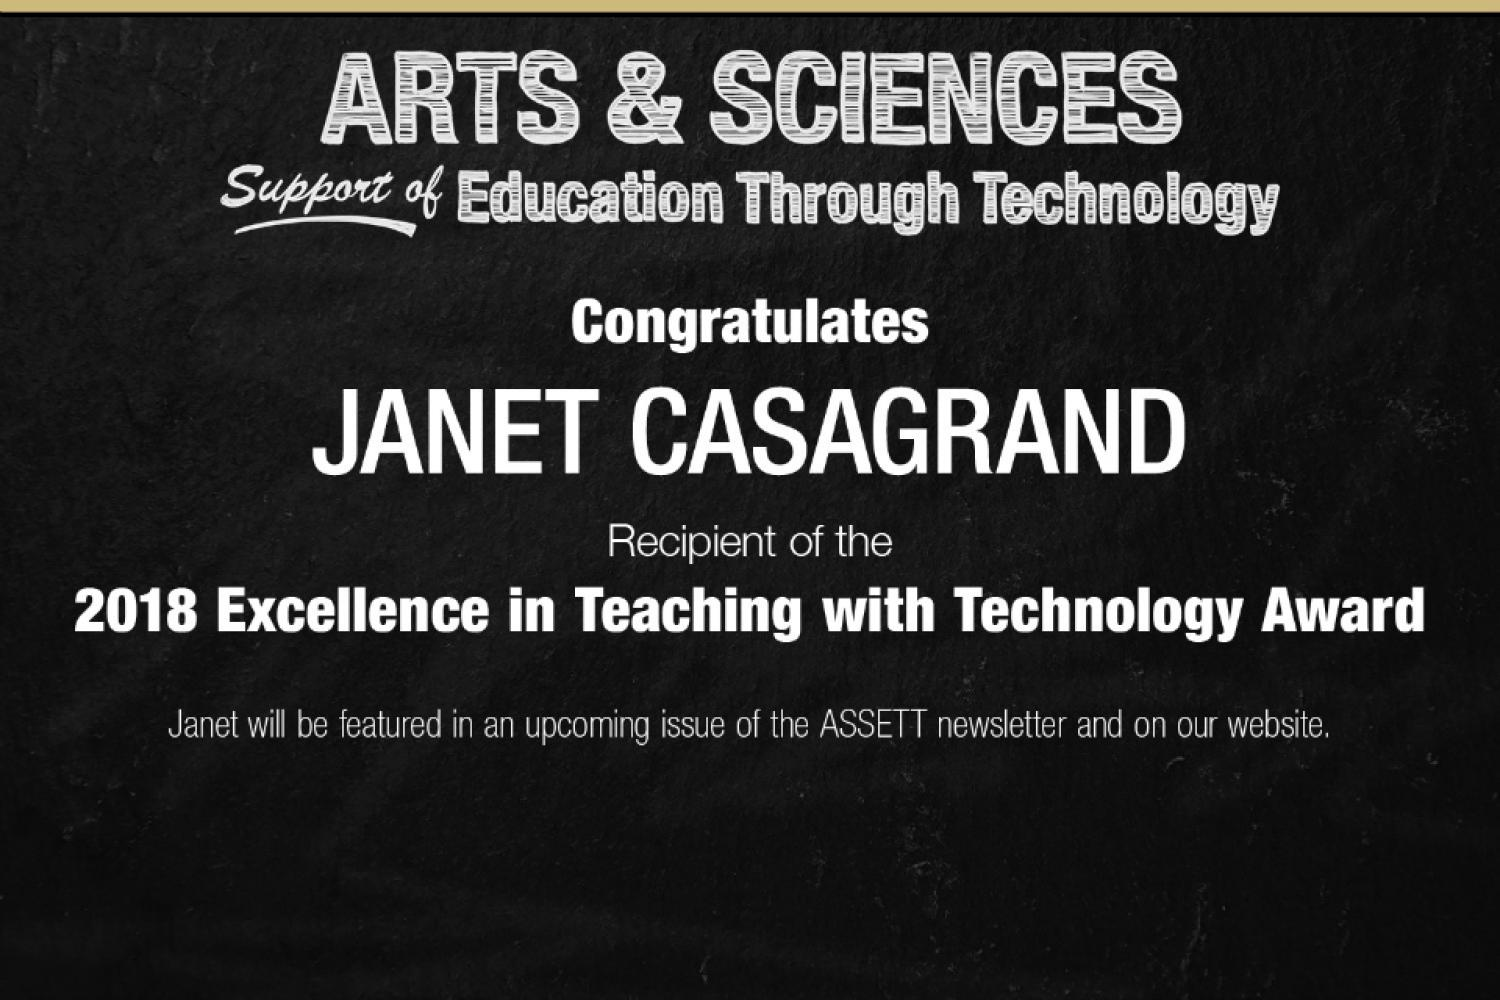 Announcing Janet Casagrand as recipient of the 2018 Excellence in Teaching with Technology Award